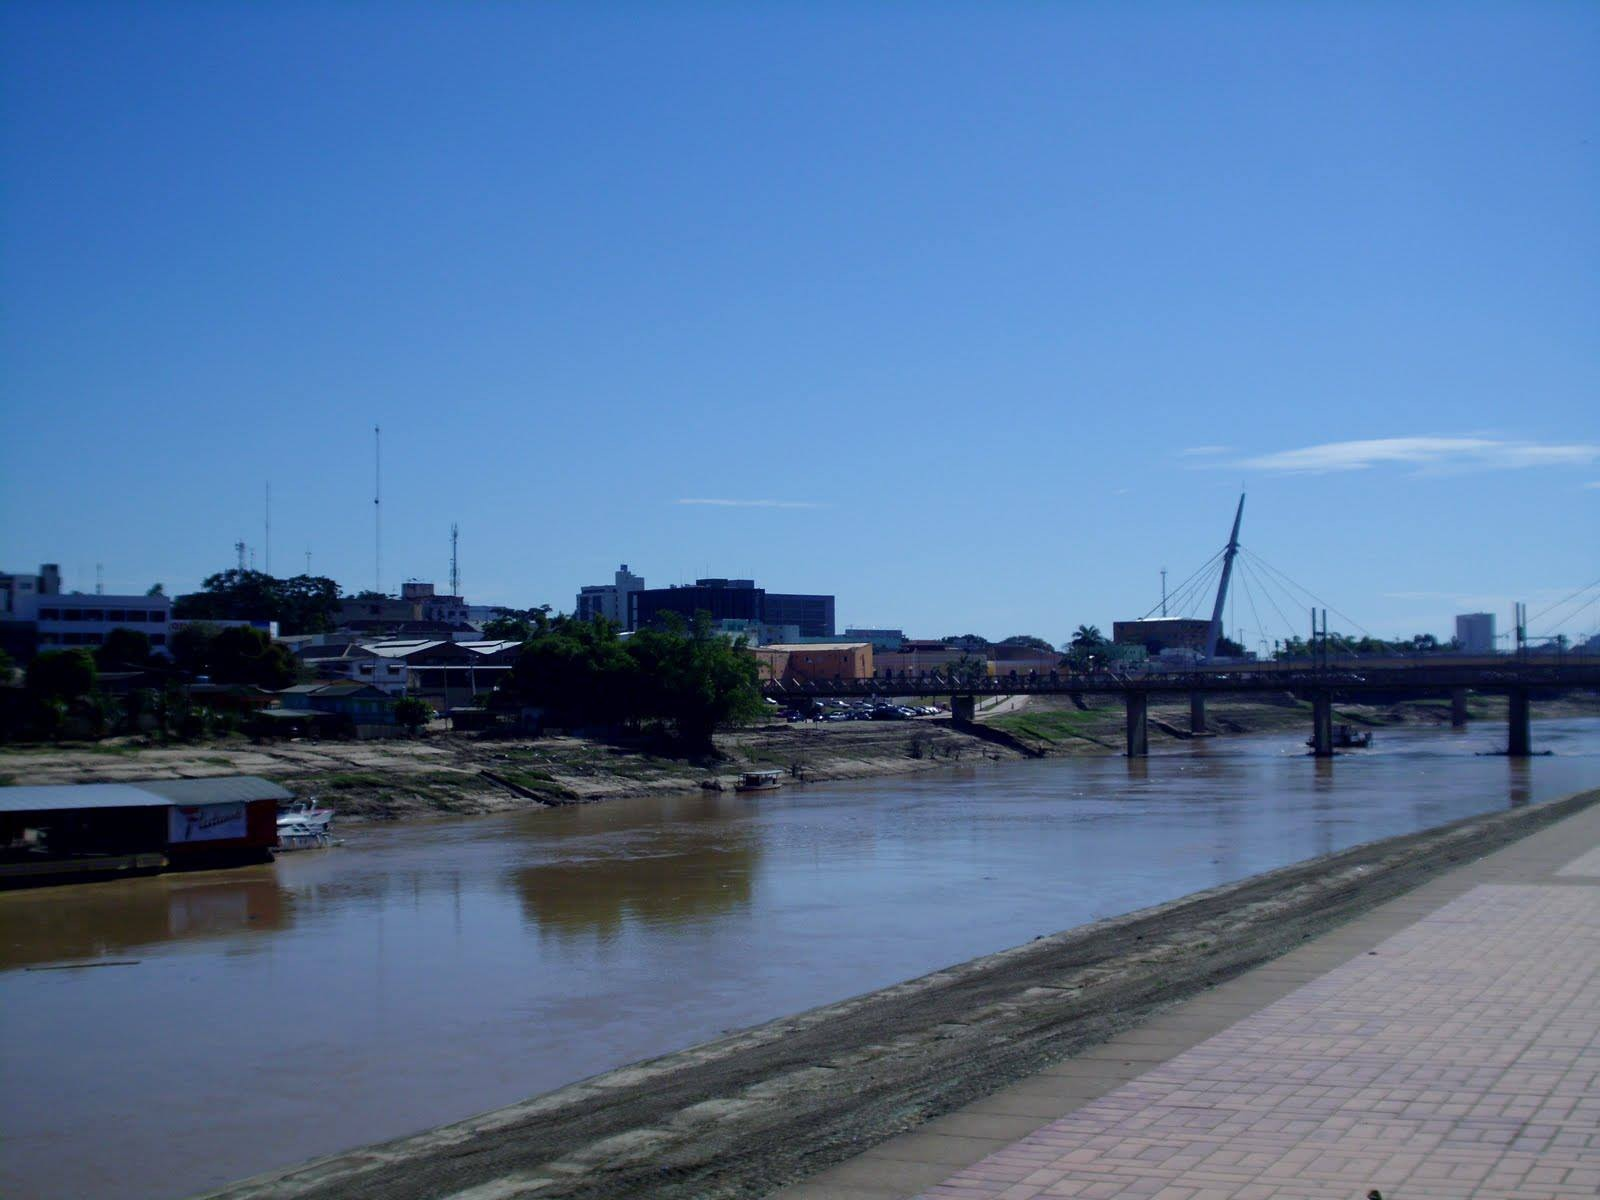 Rio Branco, Capital do Estado do Acre